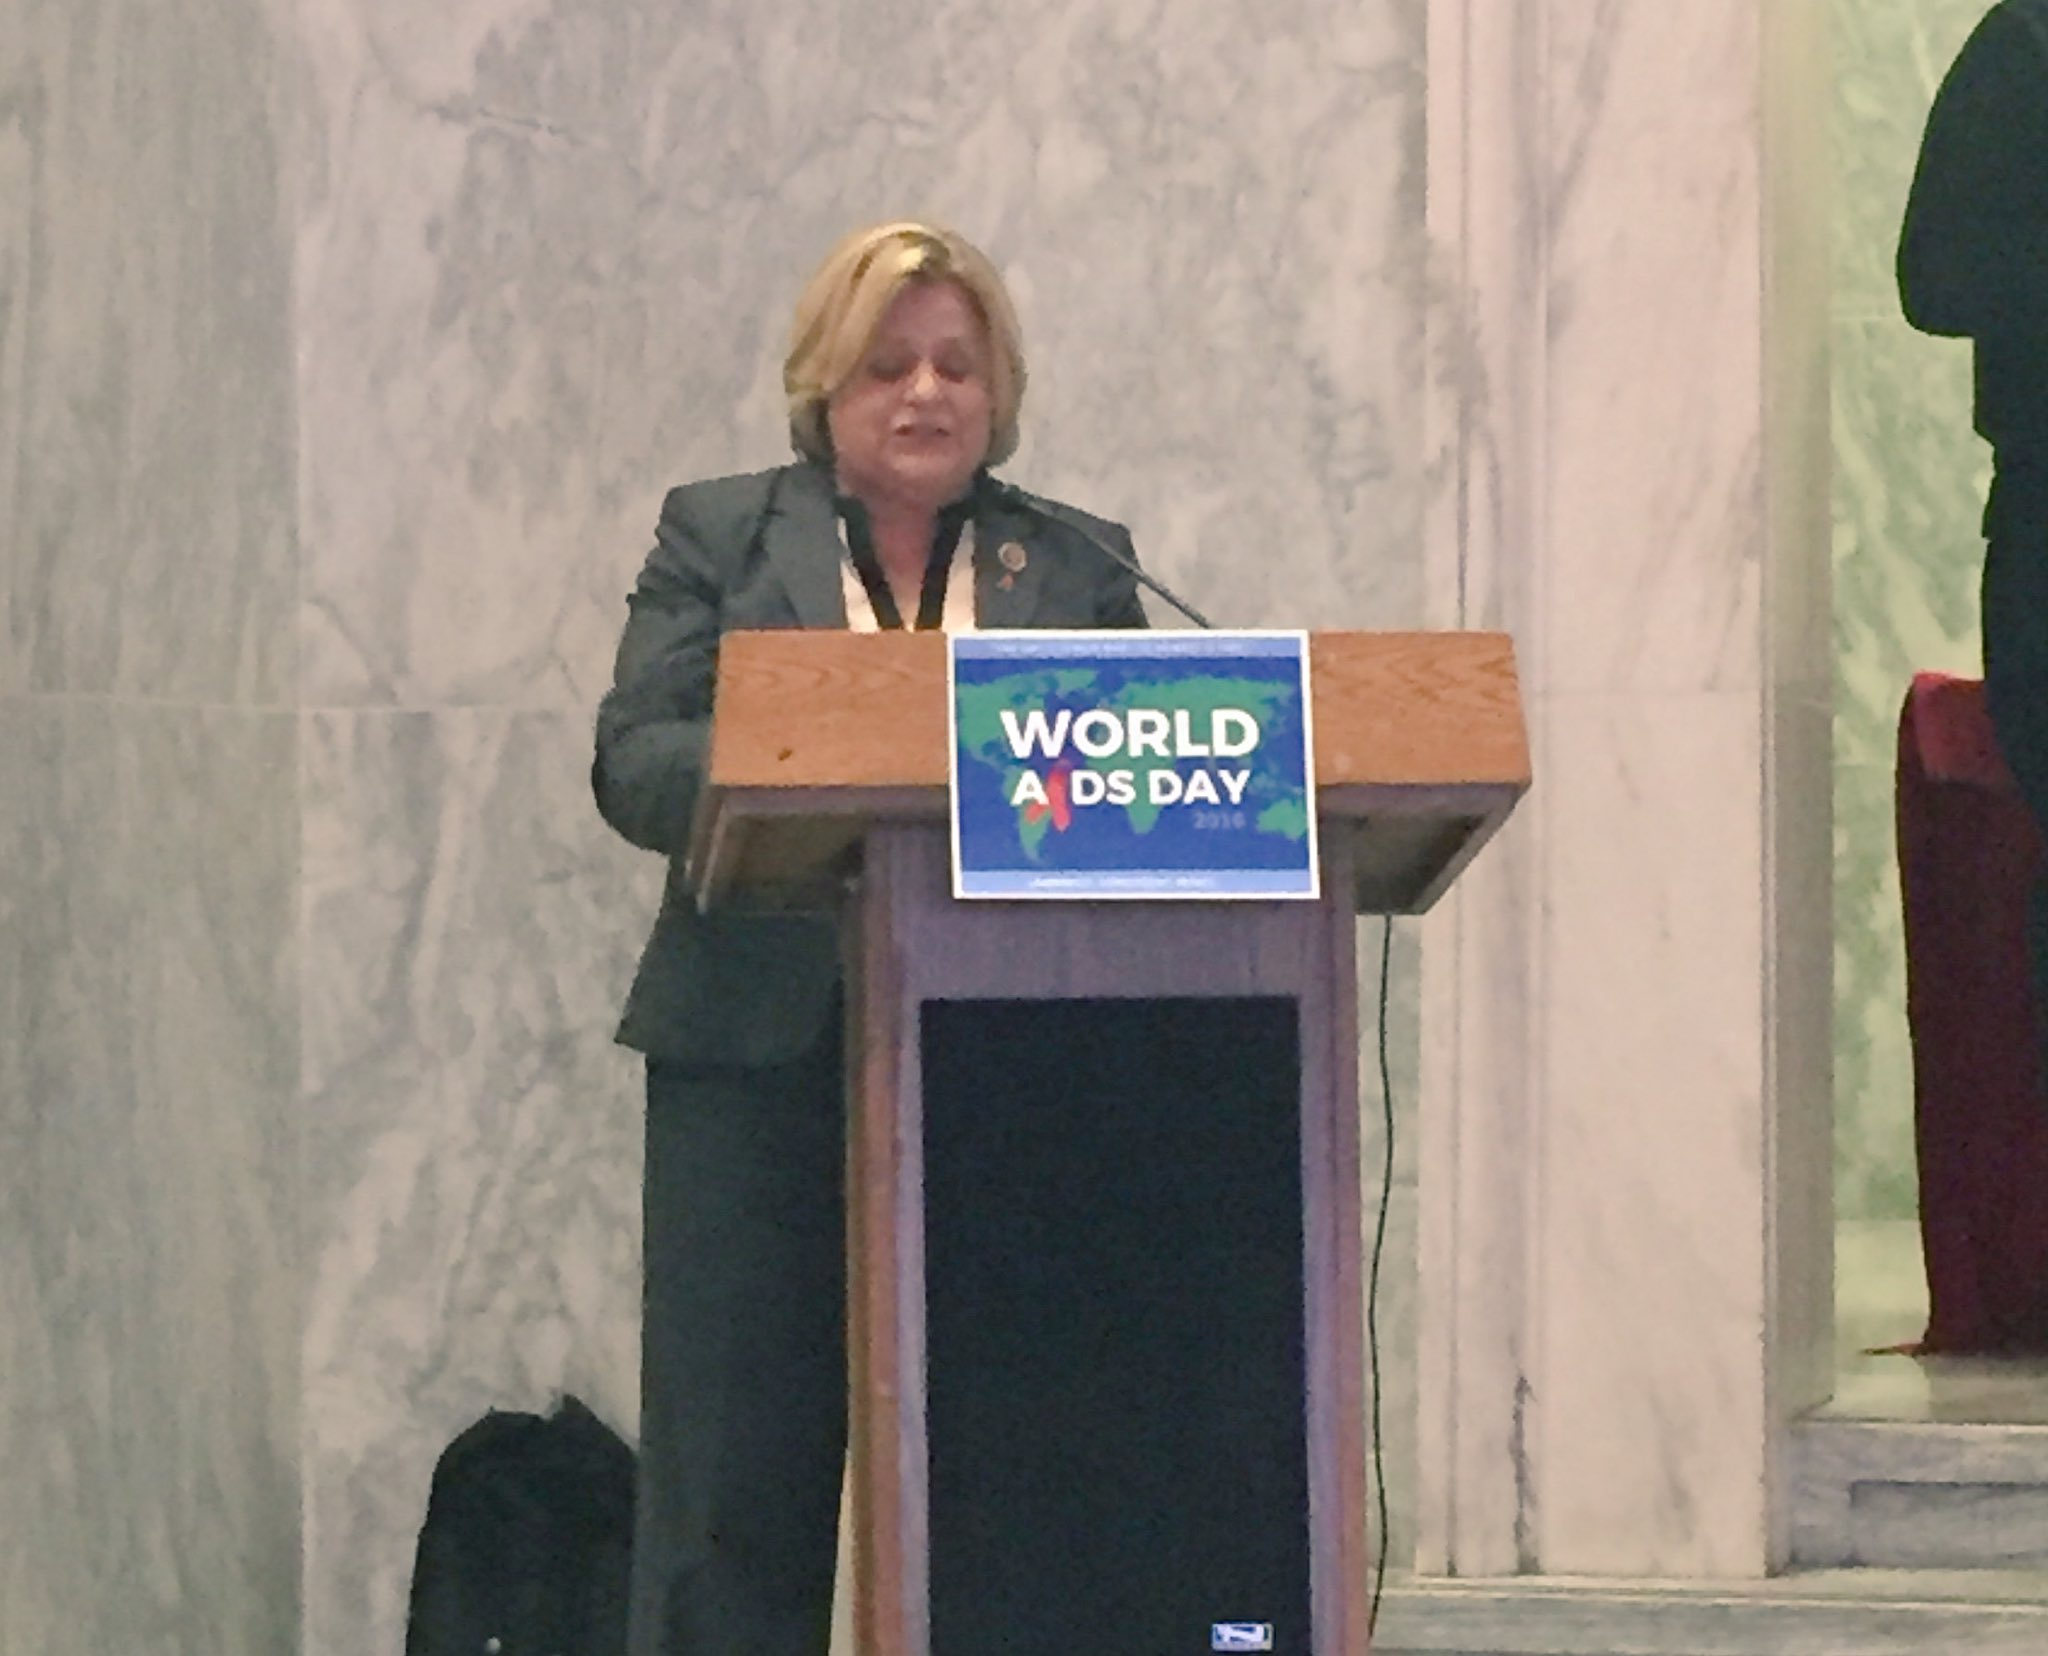 .@RosLehtinen (R) stresses importance of the maintaining bipartisan commitments to #EndAIDS. #WorldAIDSDay https://t.co/9ok81SB3So